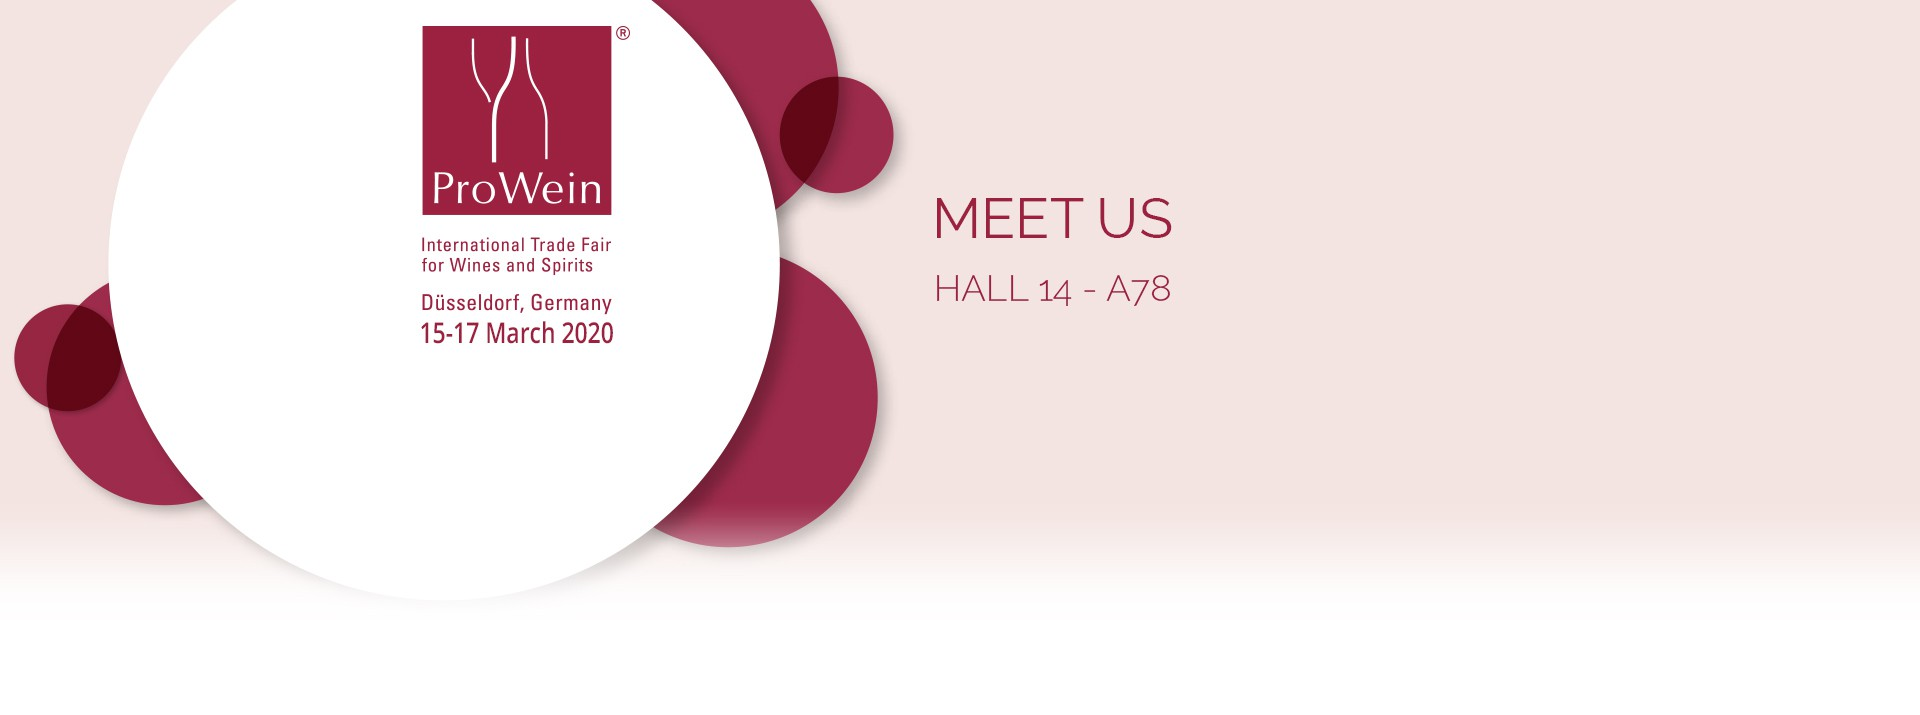 Meet EuroCave at the PROWEIN exhibition from March 15 to 17 in Düsseldorf in Germany.